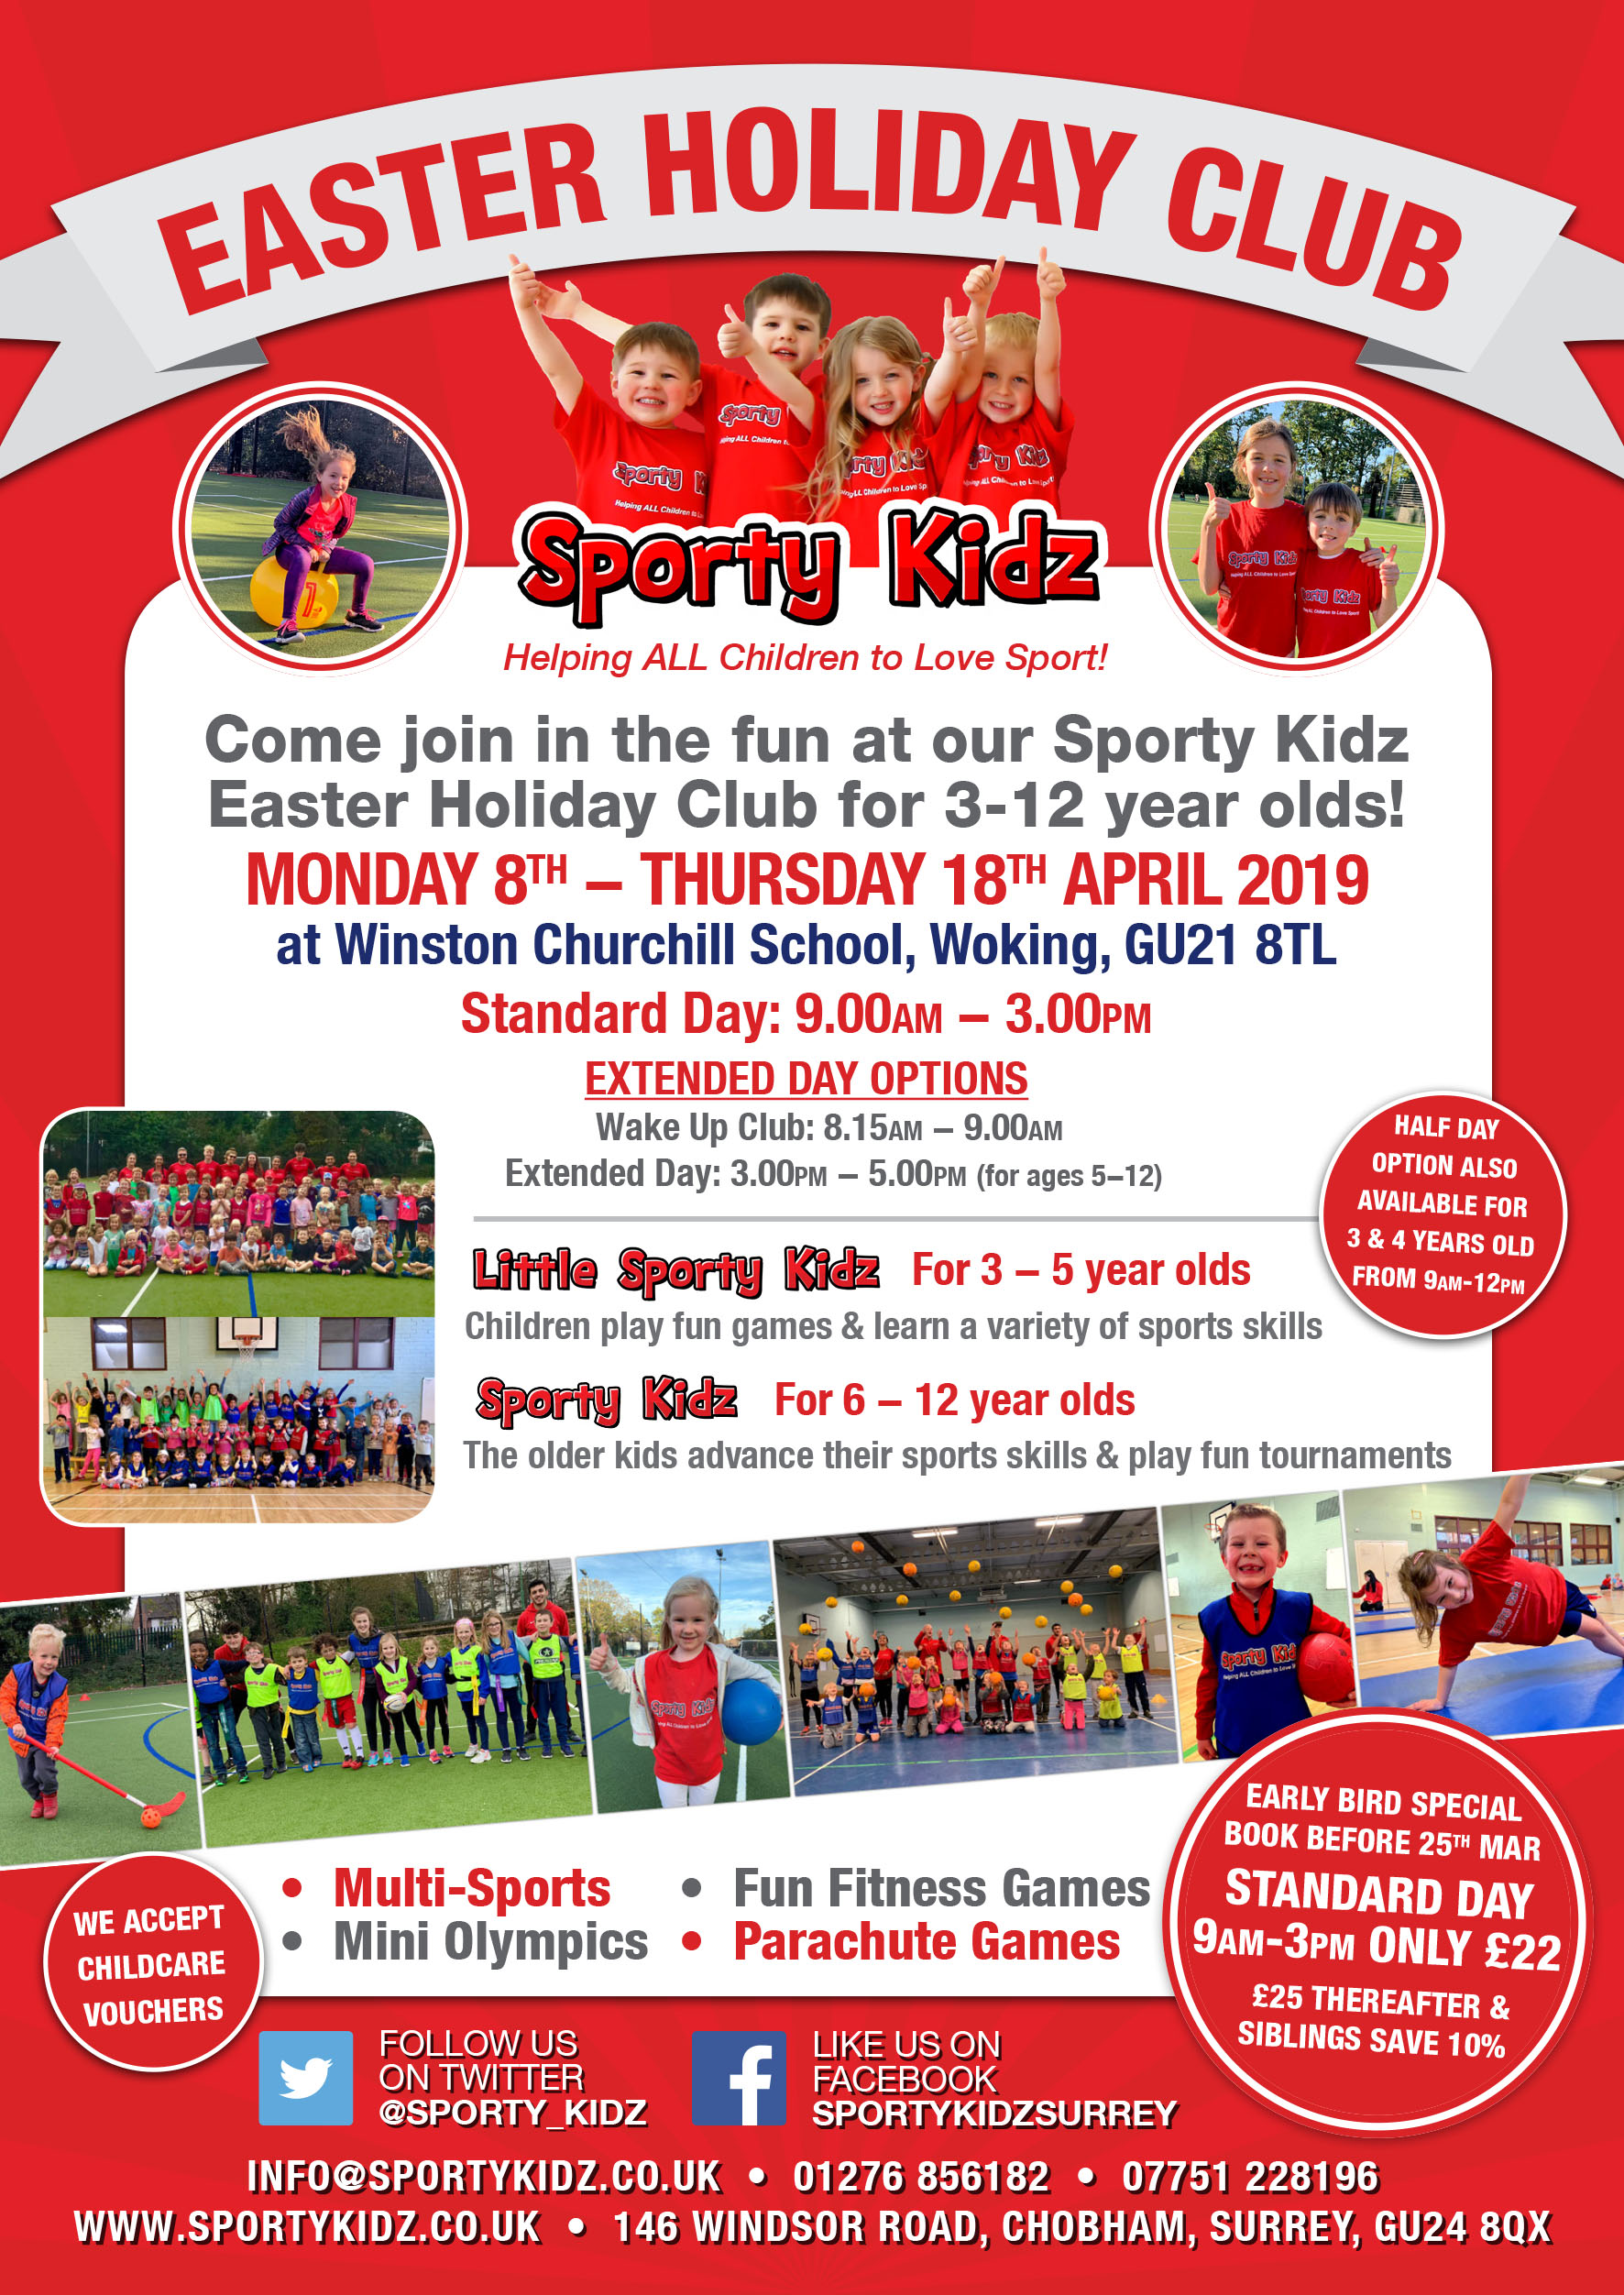 Easter Holiday Club in Surrey